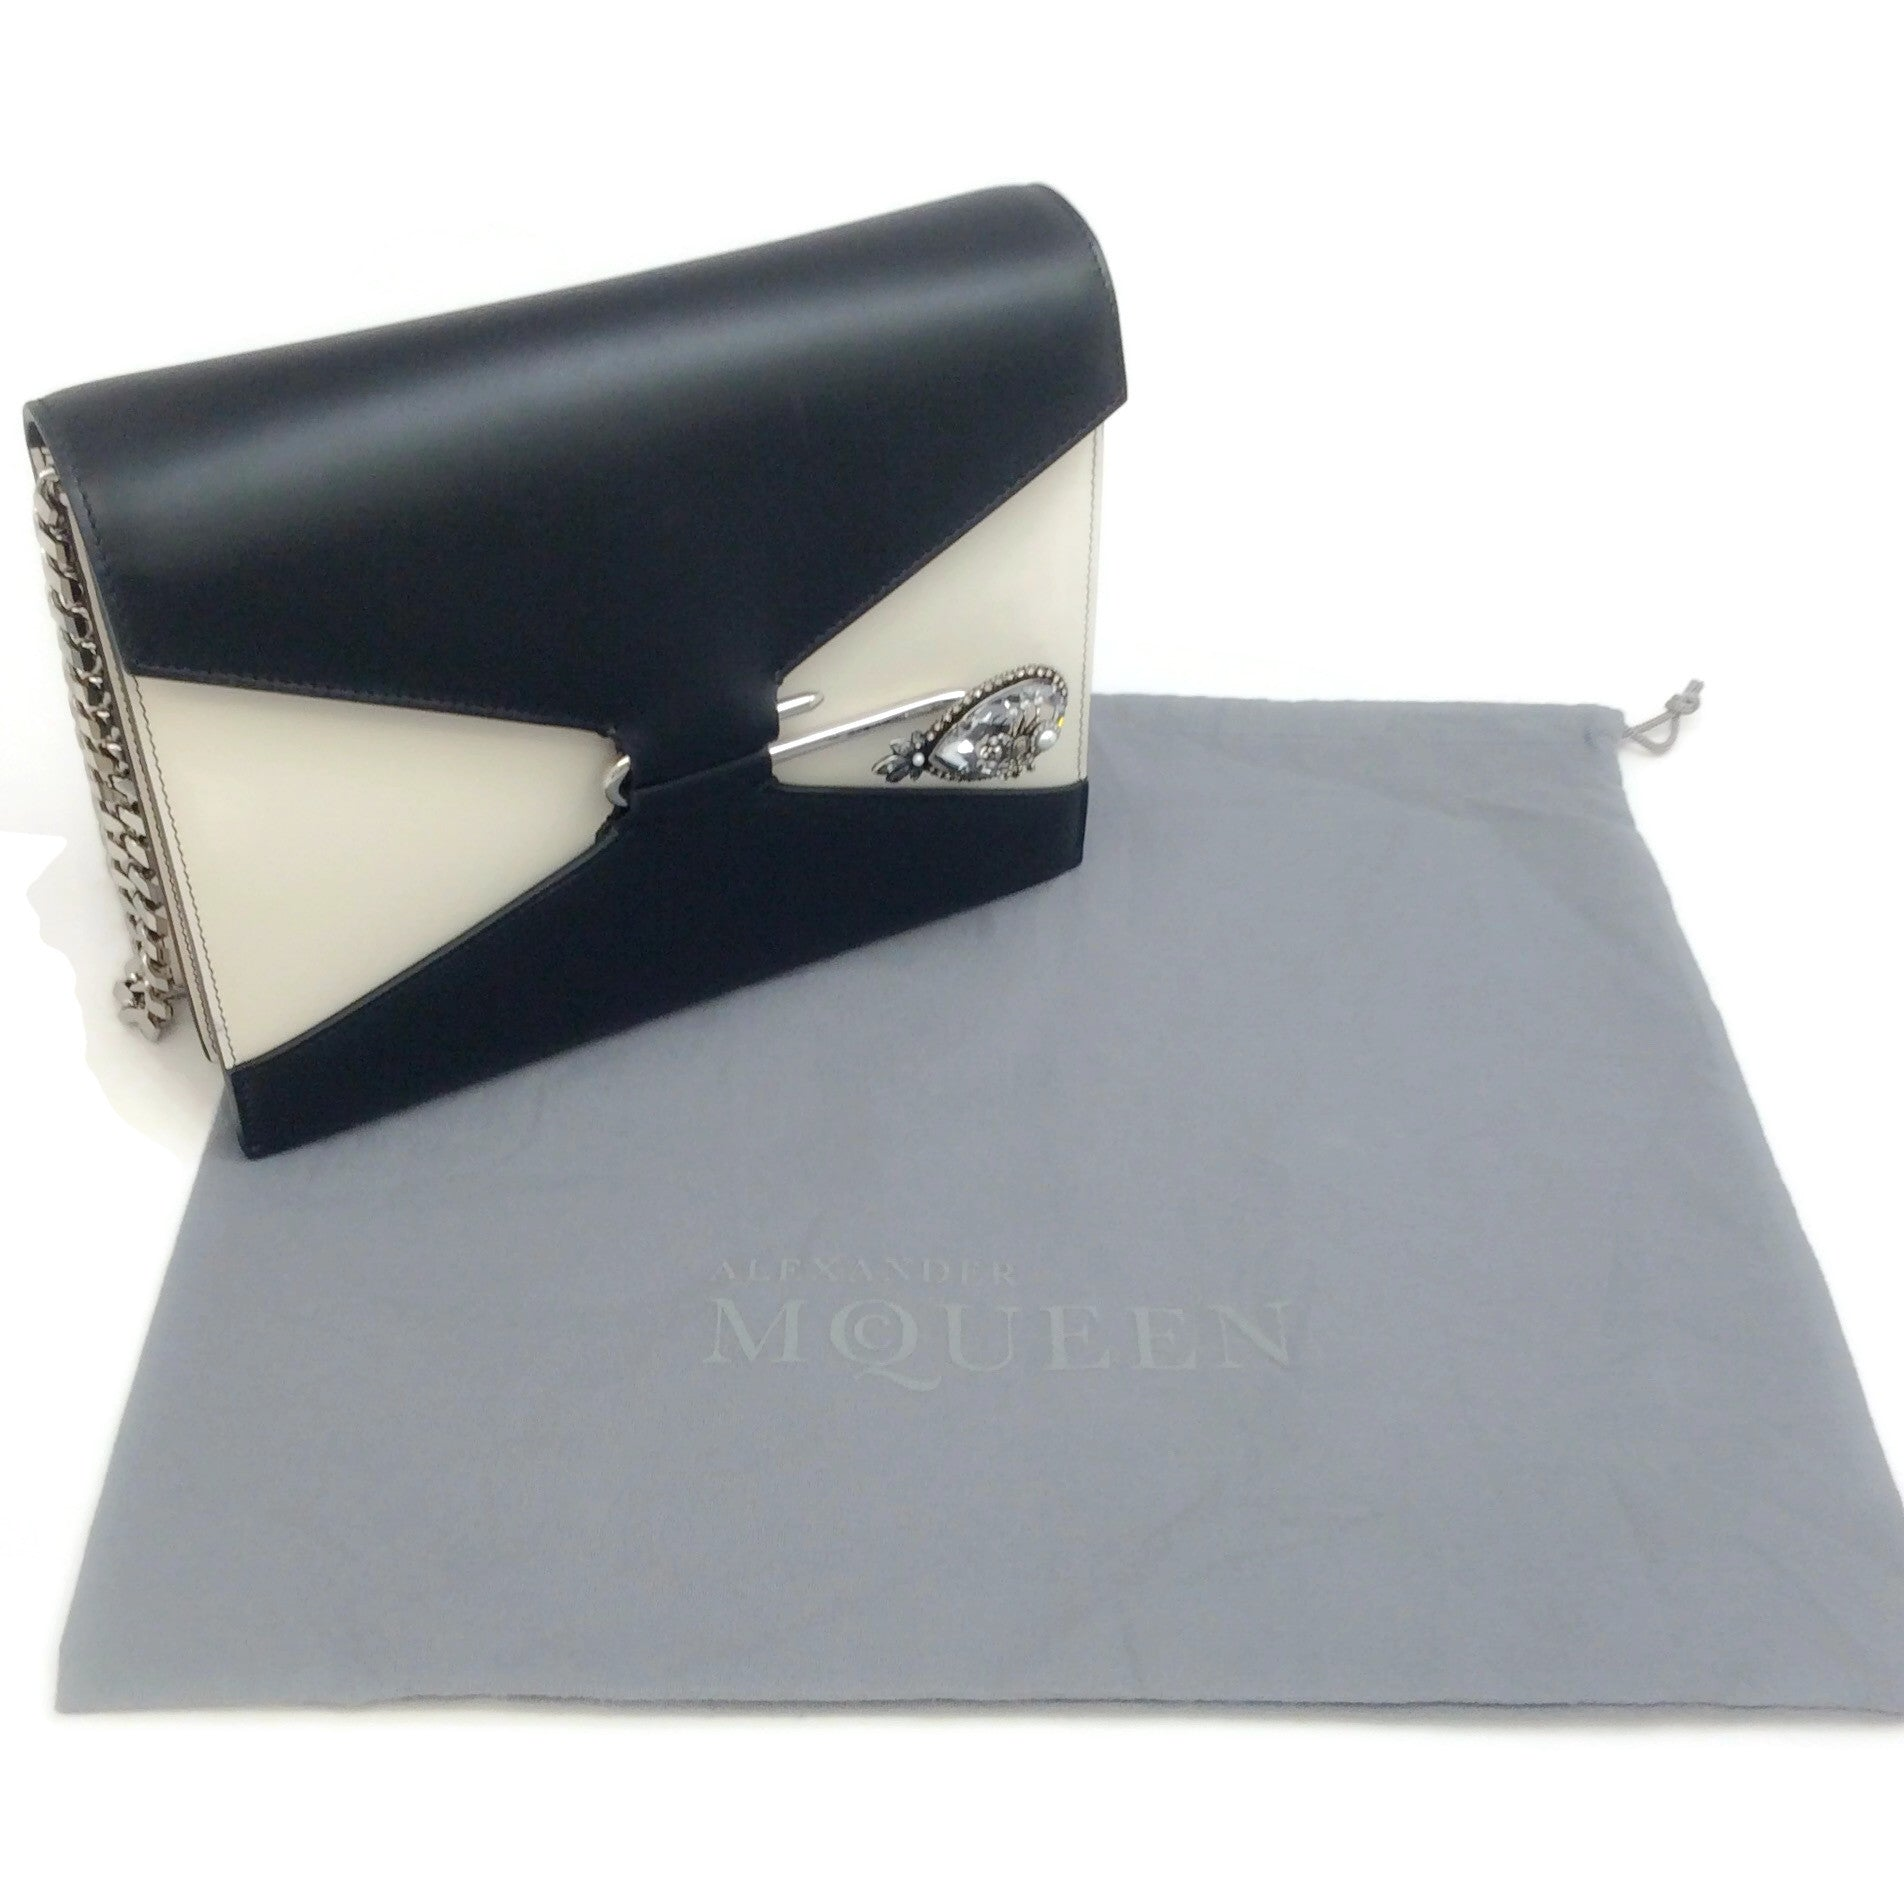 Alexander McQueen Spider Slide Clasp Black / Ivory Leather Shoulder Bag